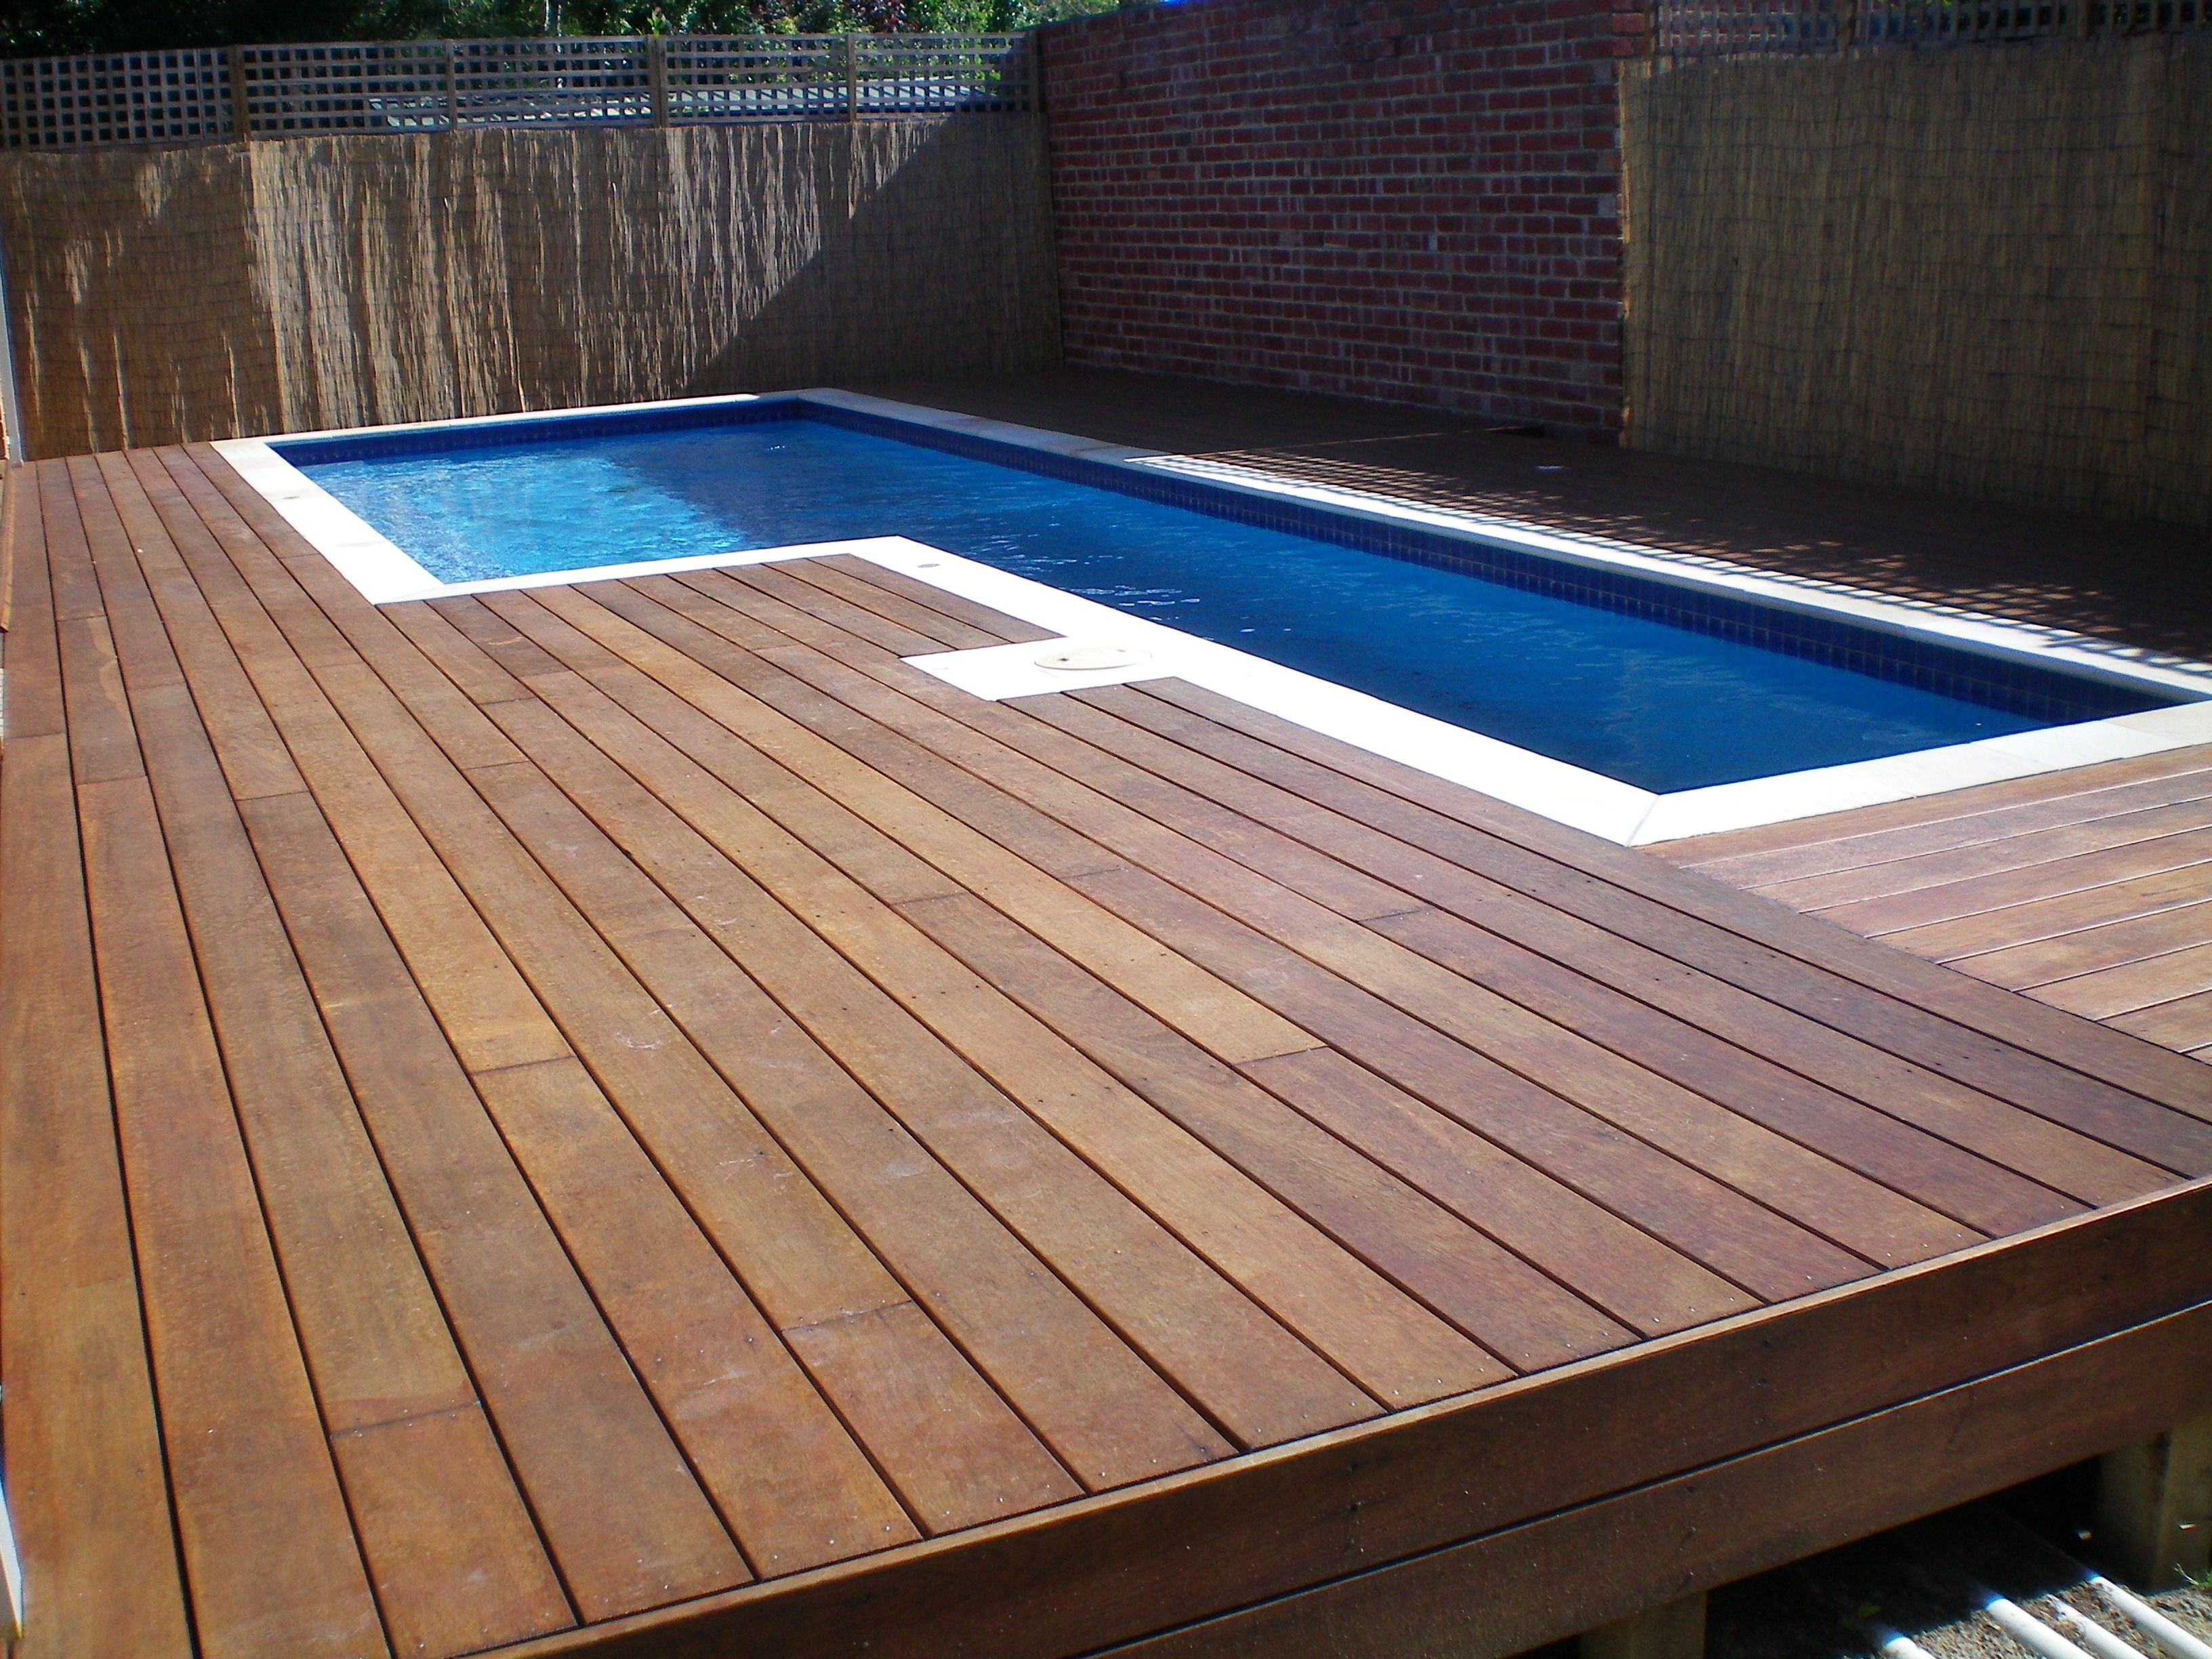 Swimming Pool Decking Melbourne Decking For Pools Pool Surround Decking Wood Pool Deck Wooden Deck Designs Wooden Pool